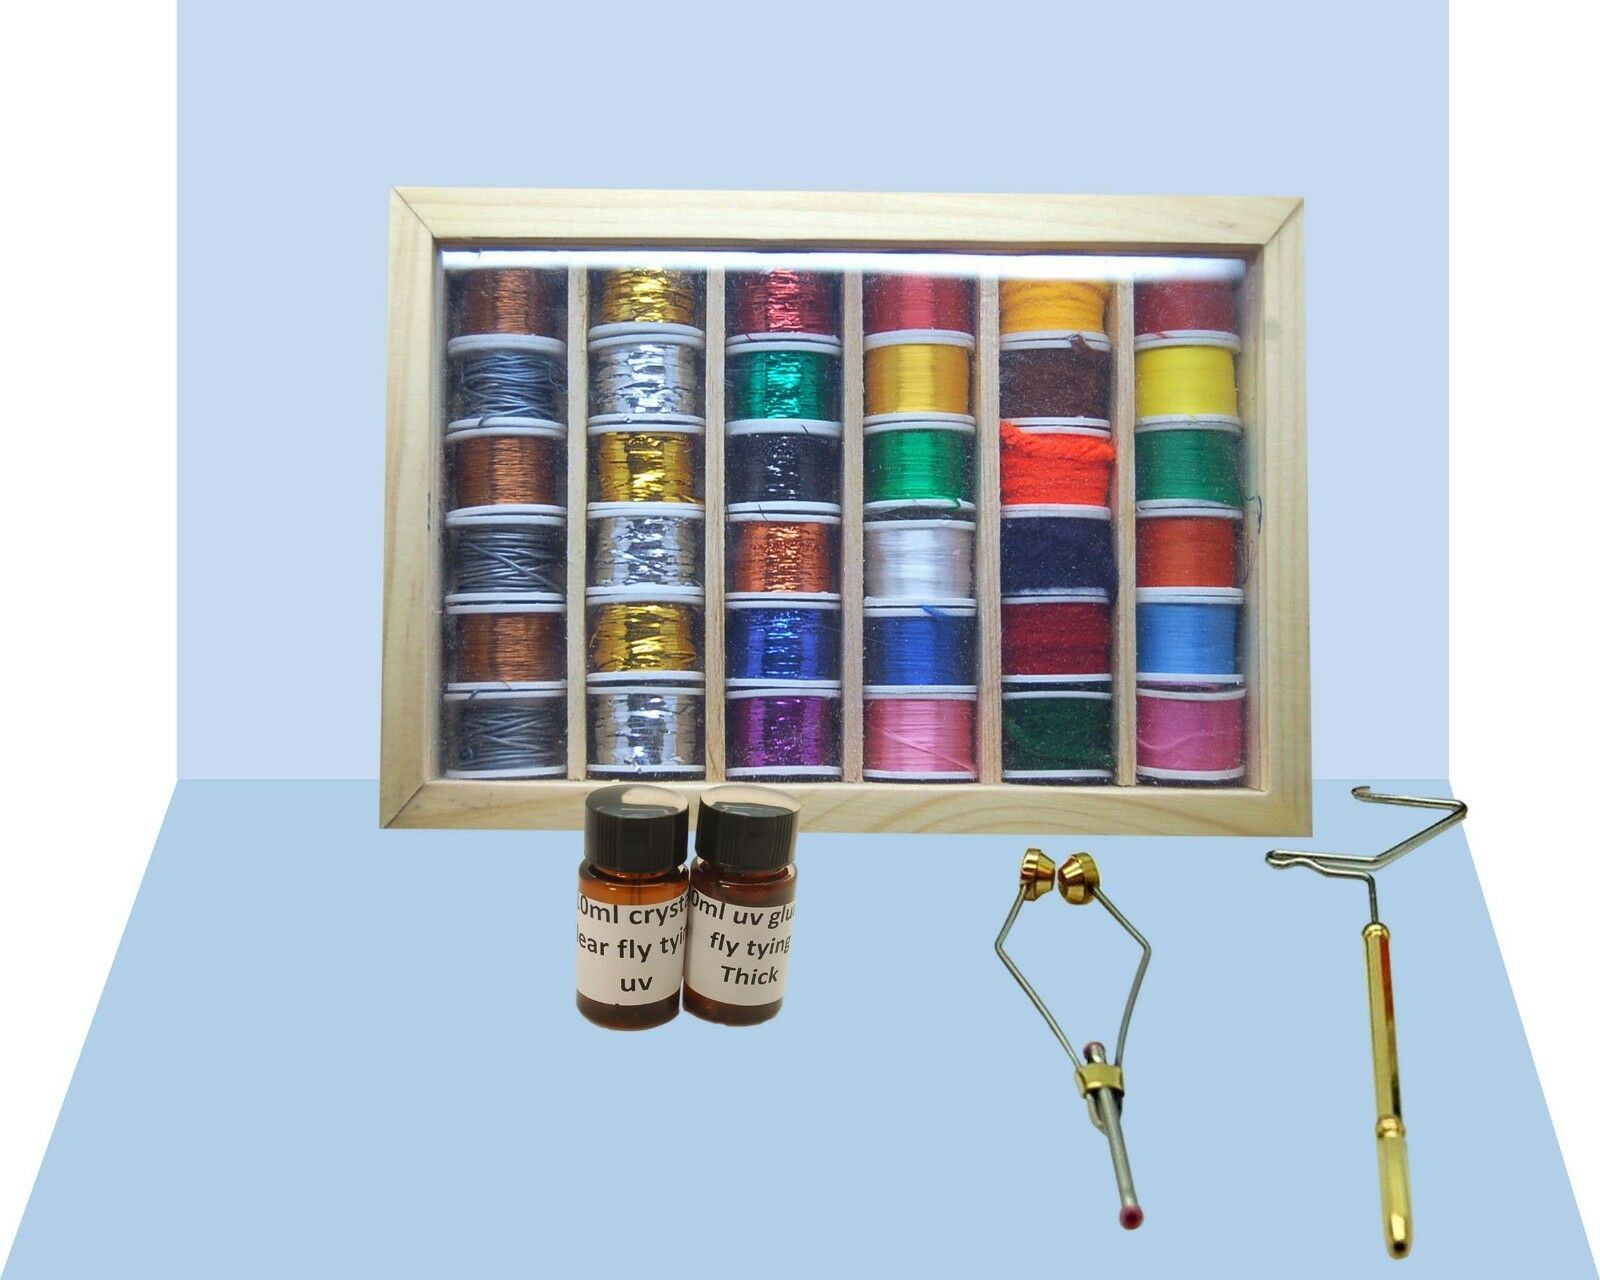 Fly Tying Bundle with 36 Spools Thread, Floss, Tinsel, UV Glue, Wire, Tools